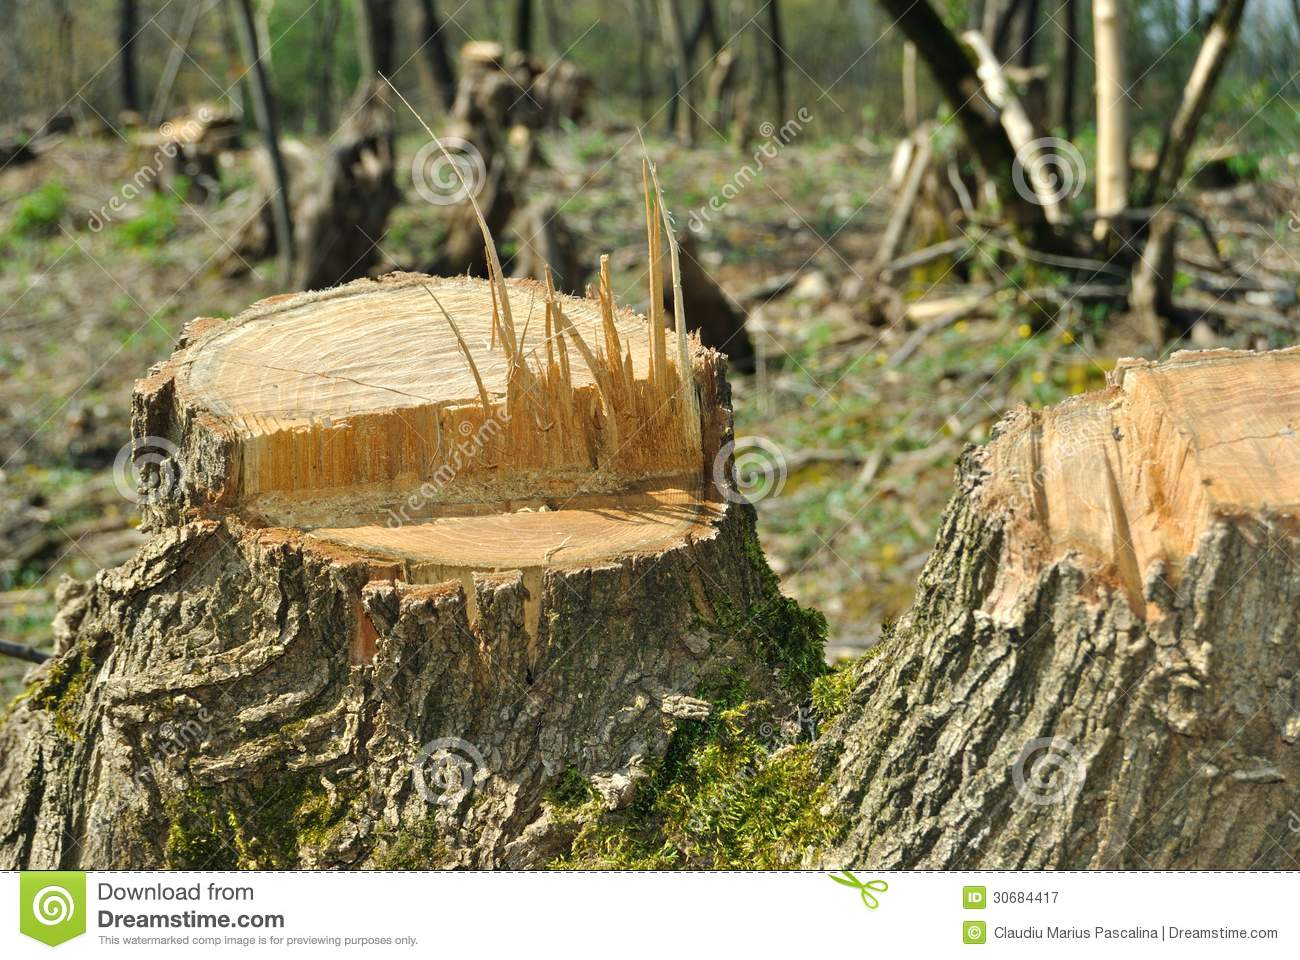 Deforestation stock image. Image of industry, large, closeup.